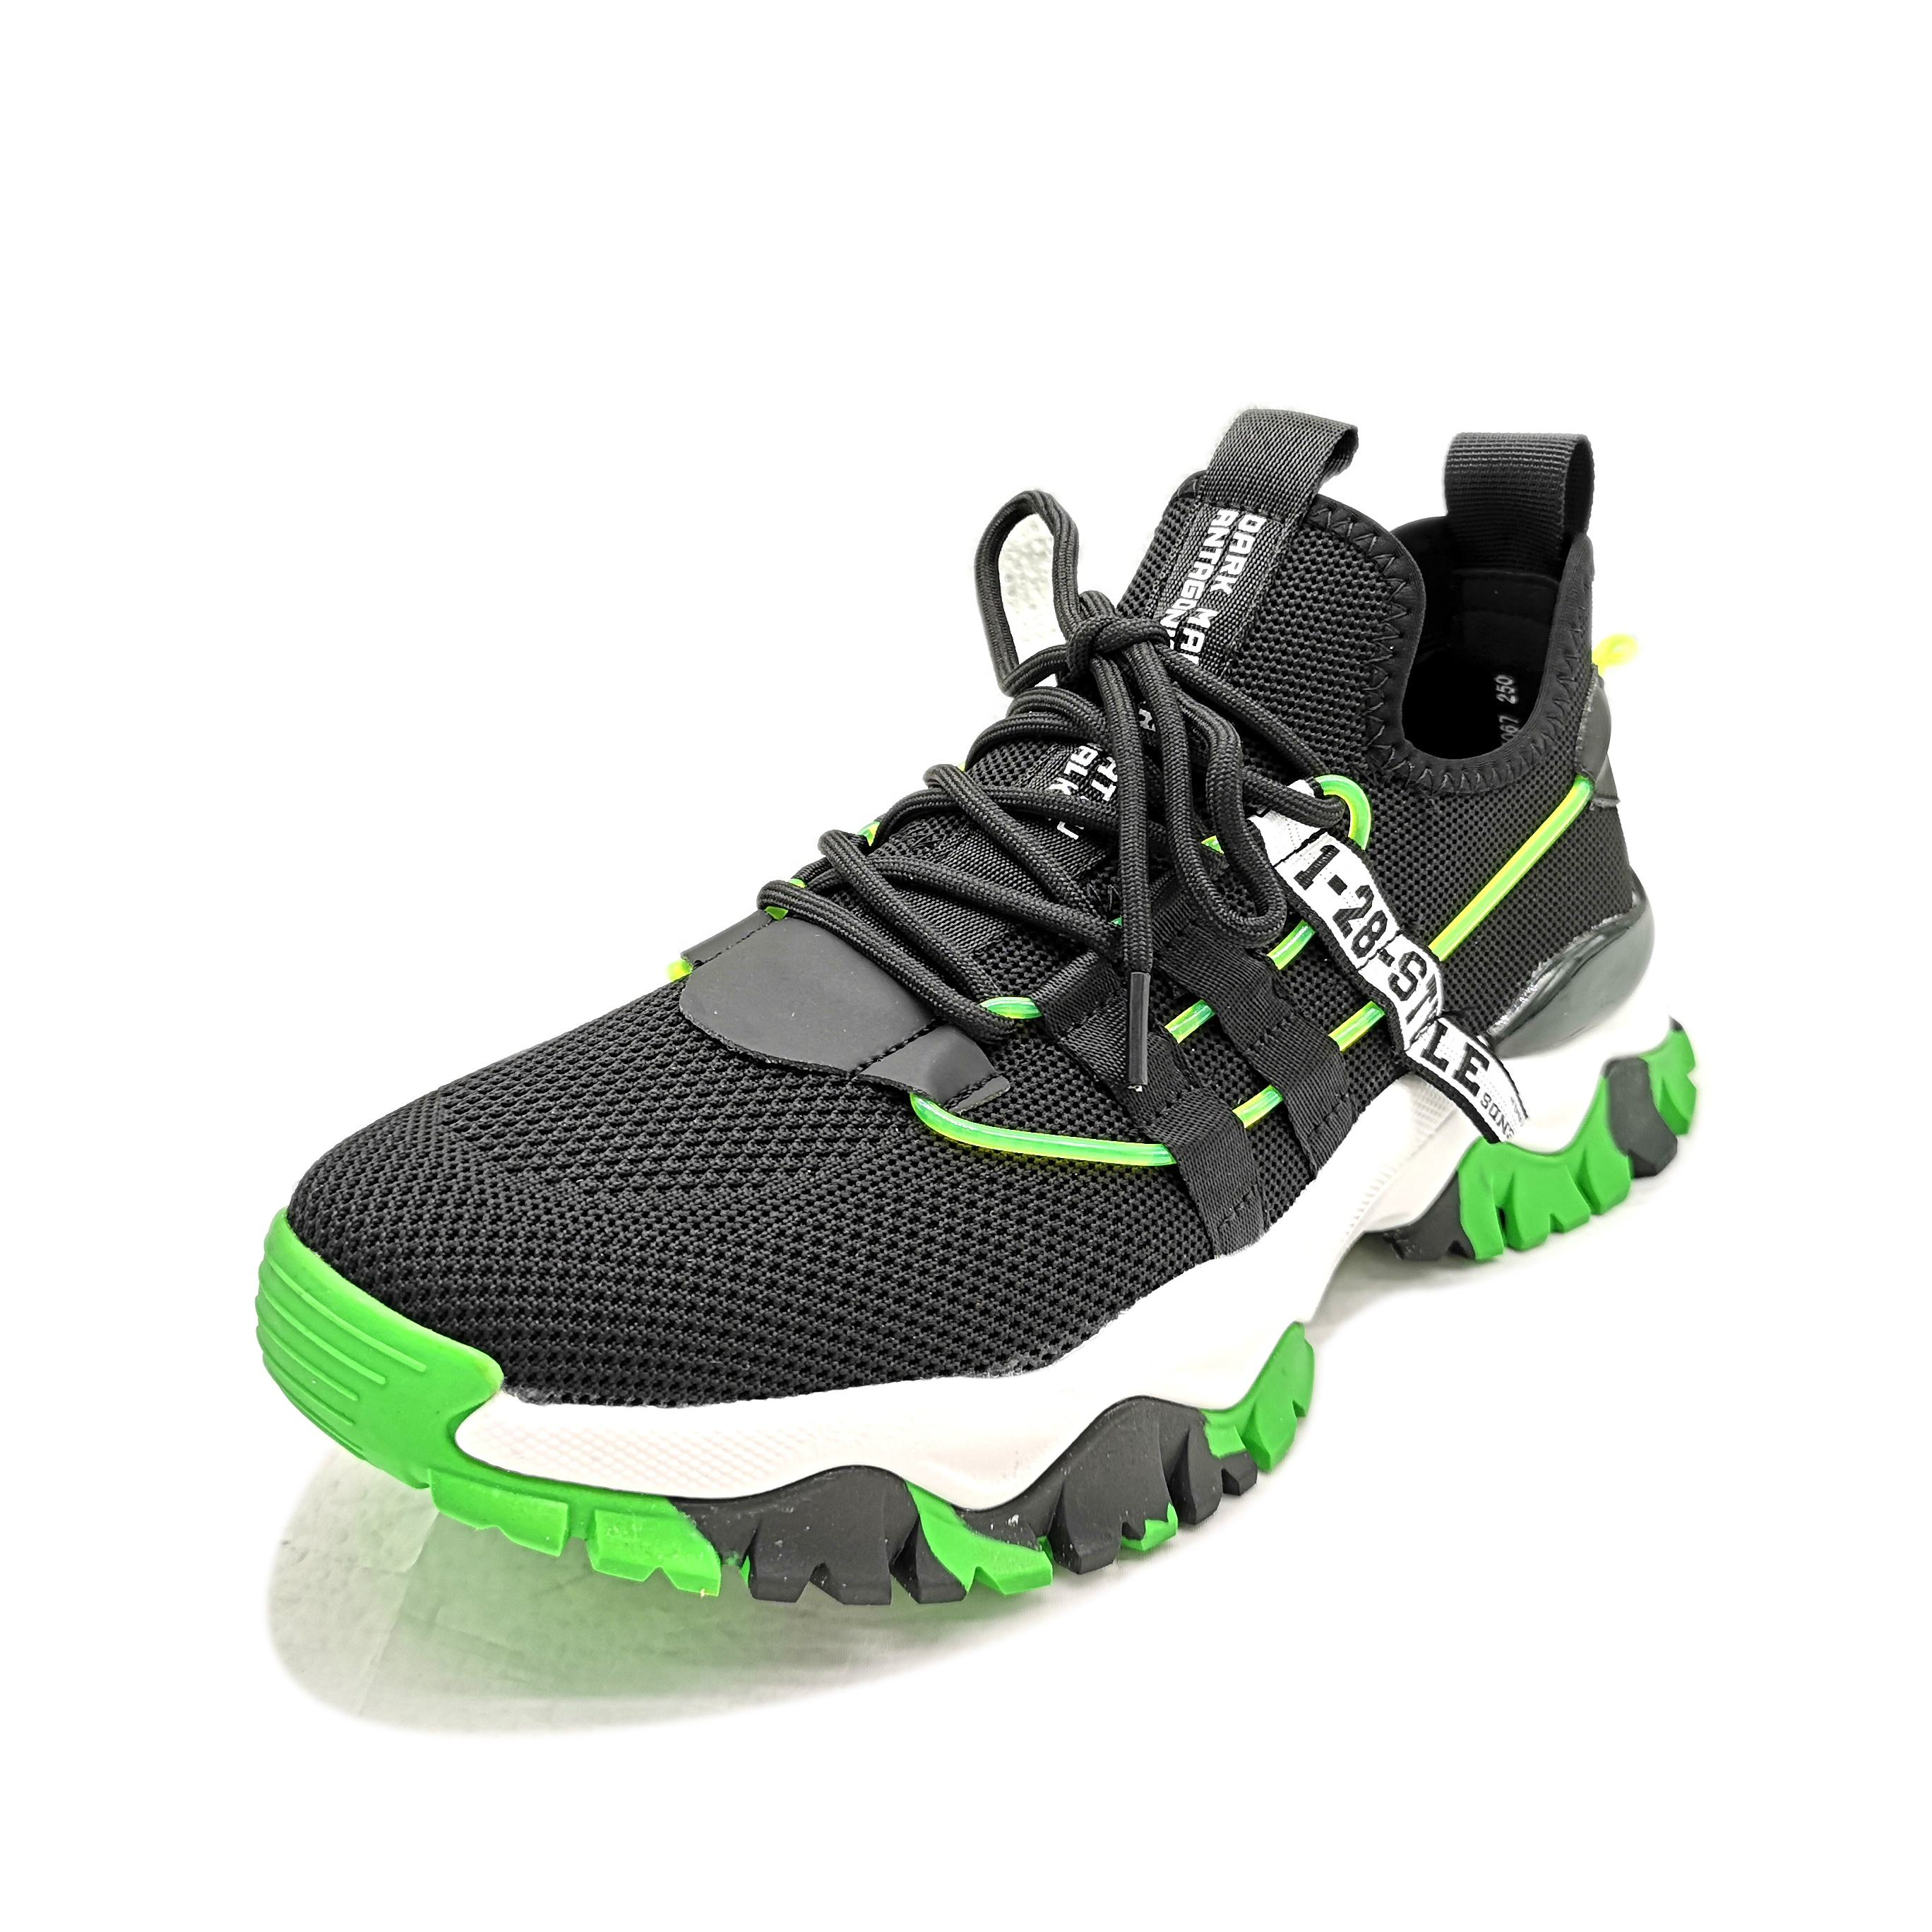 RBshoes Sport Shoes for Men Running Shoes Men Light Weight Walking Sneaker Athletic Outdoor Shoes